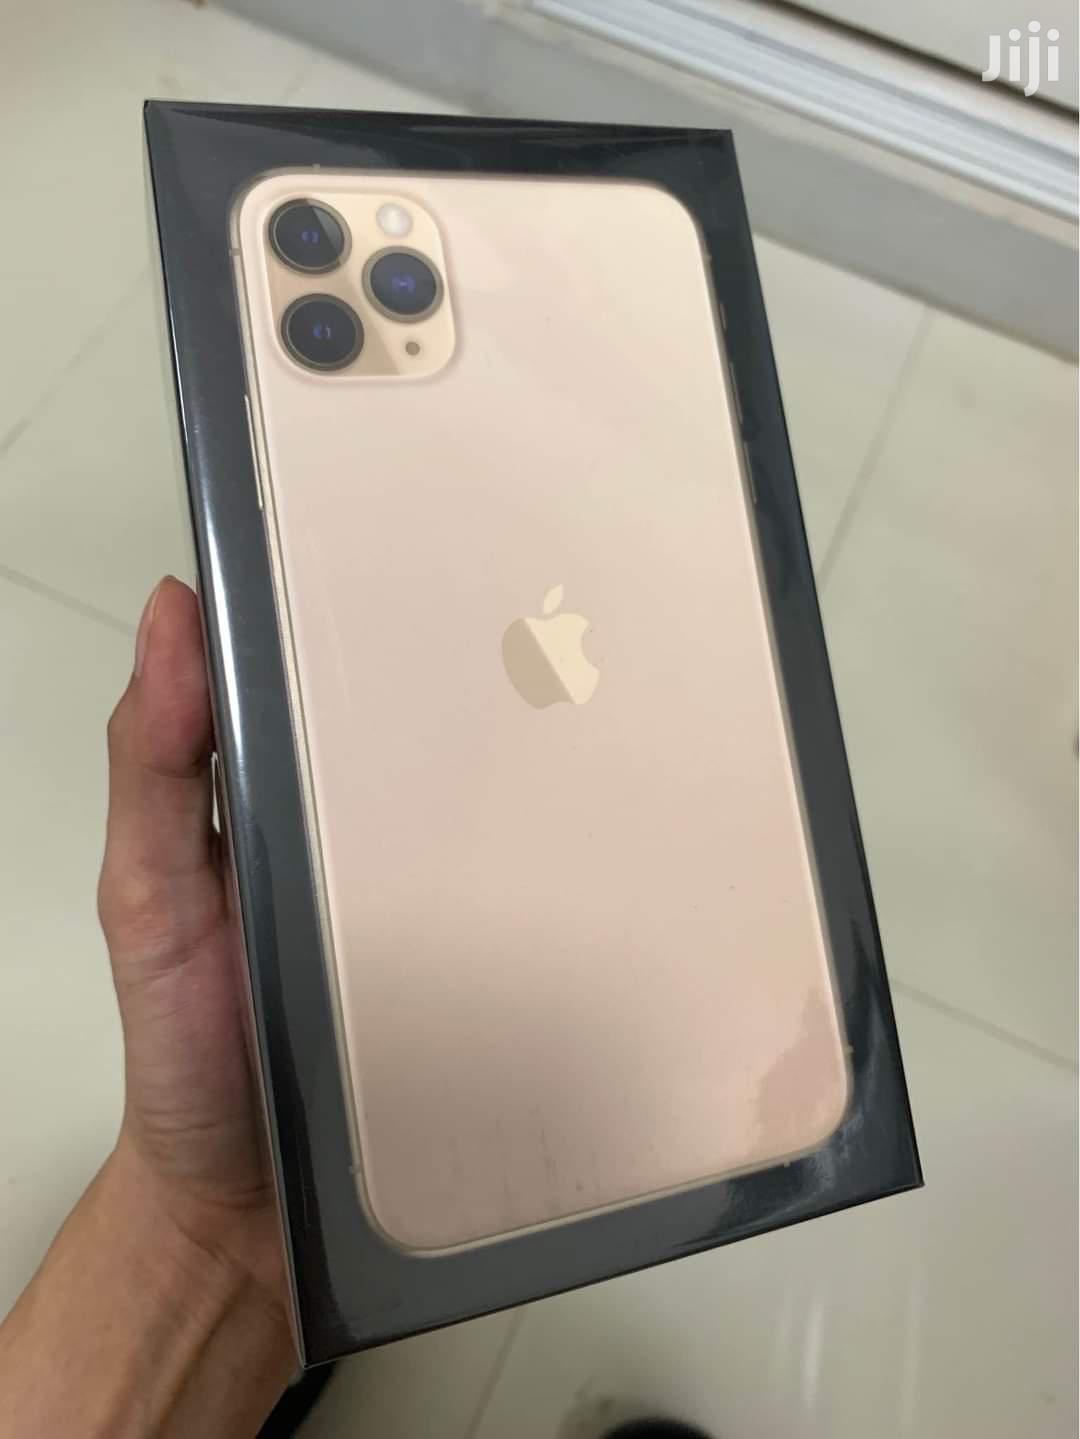 New Apple iPhone 11 Pro Max 256 GB Gold | Mobile Phones for sale in Nairobi Central, Nairobi, Kenya